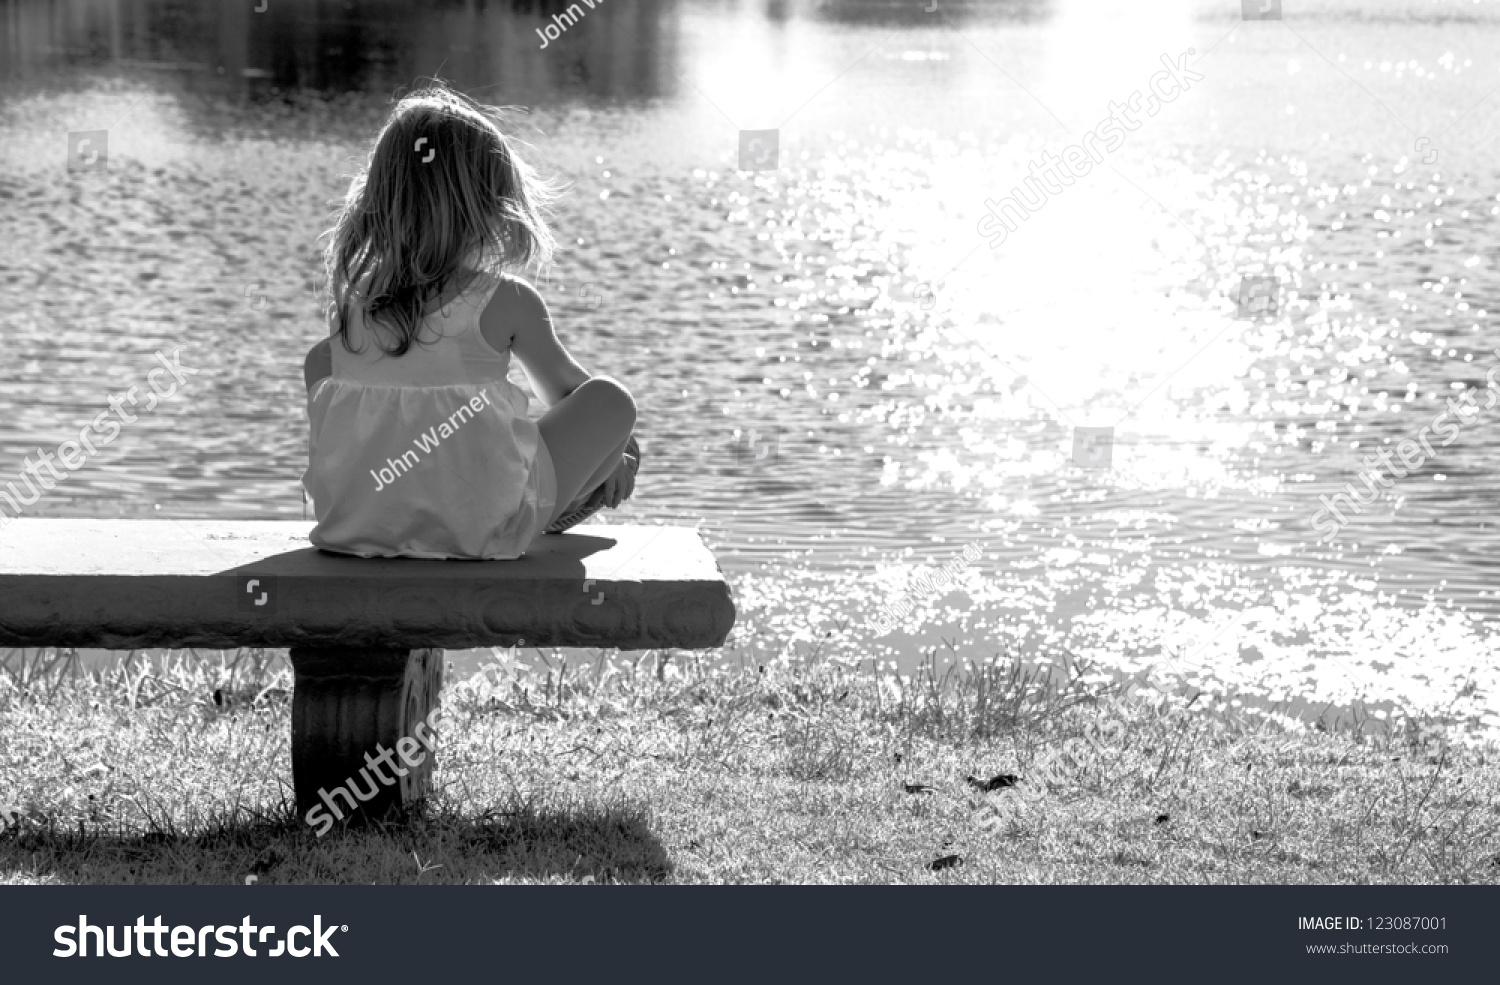 A Lonely Little Girl